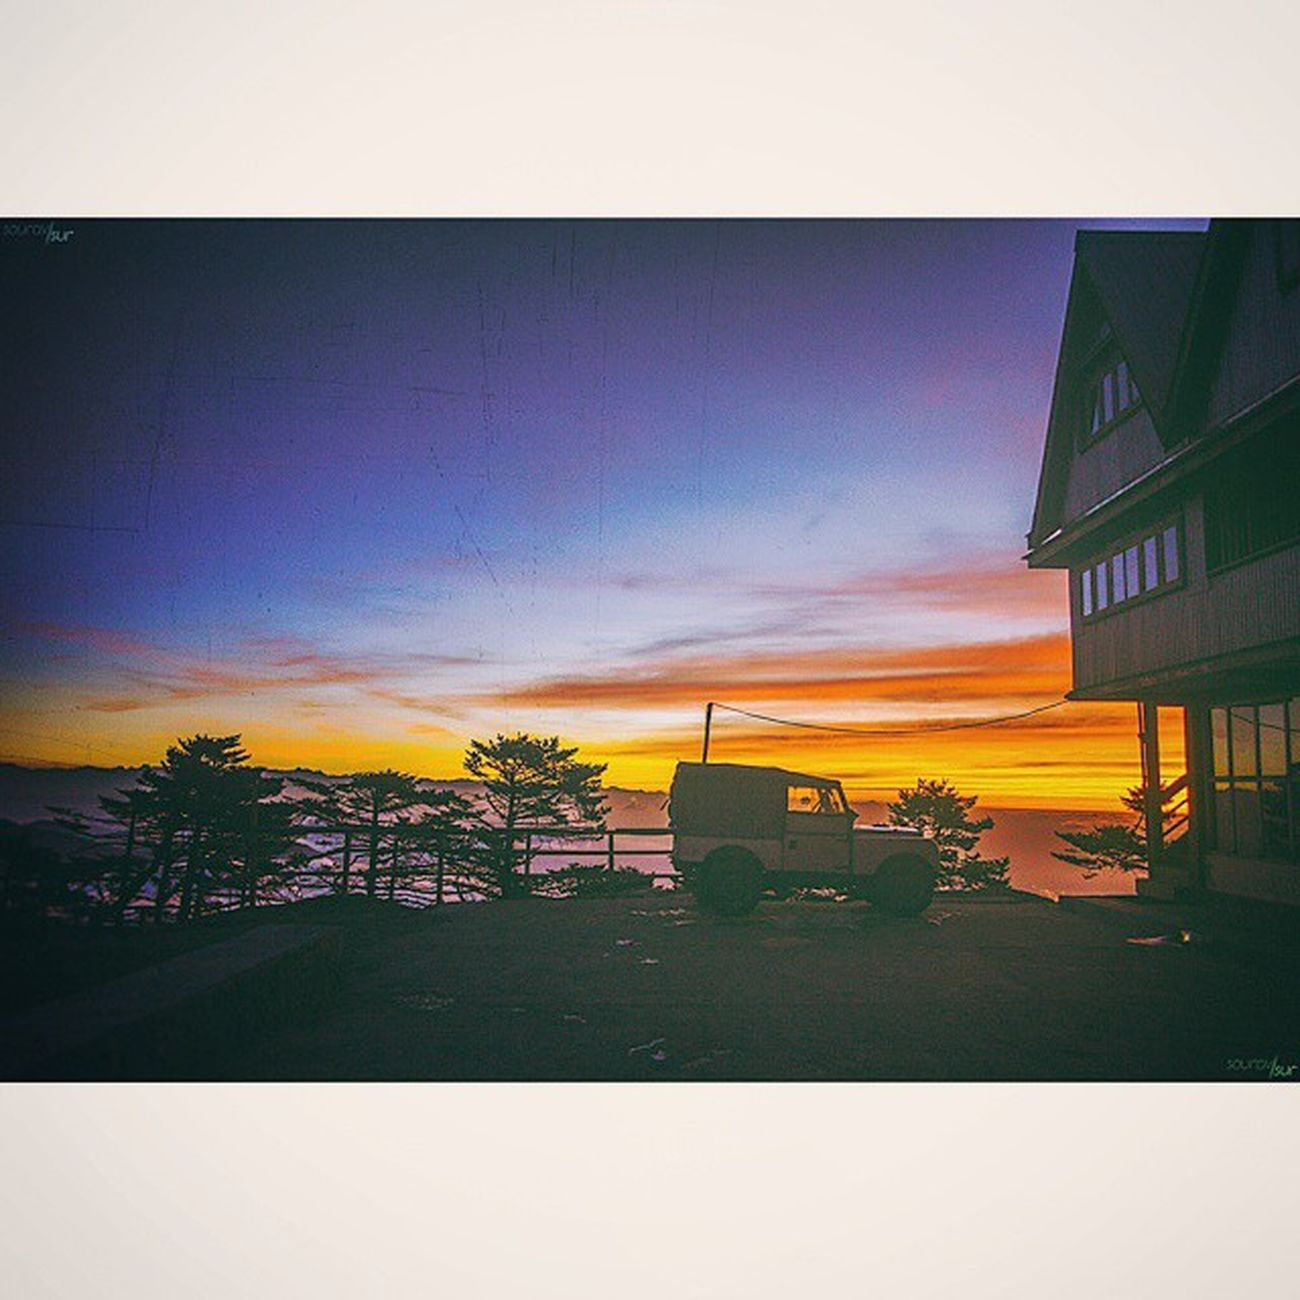 Squaredroid Picoftheday Instapic Instapicture Photooftheday Sandakphu Earlymorning  Sunrise Sky BoysTrip Awesomeview Chilling Like4like Followme Jeep Photograph Photographie  Photography Weather TooCold